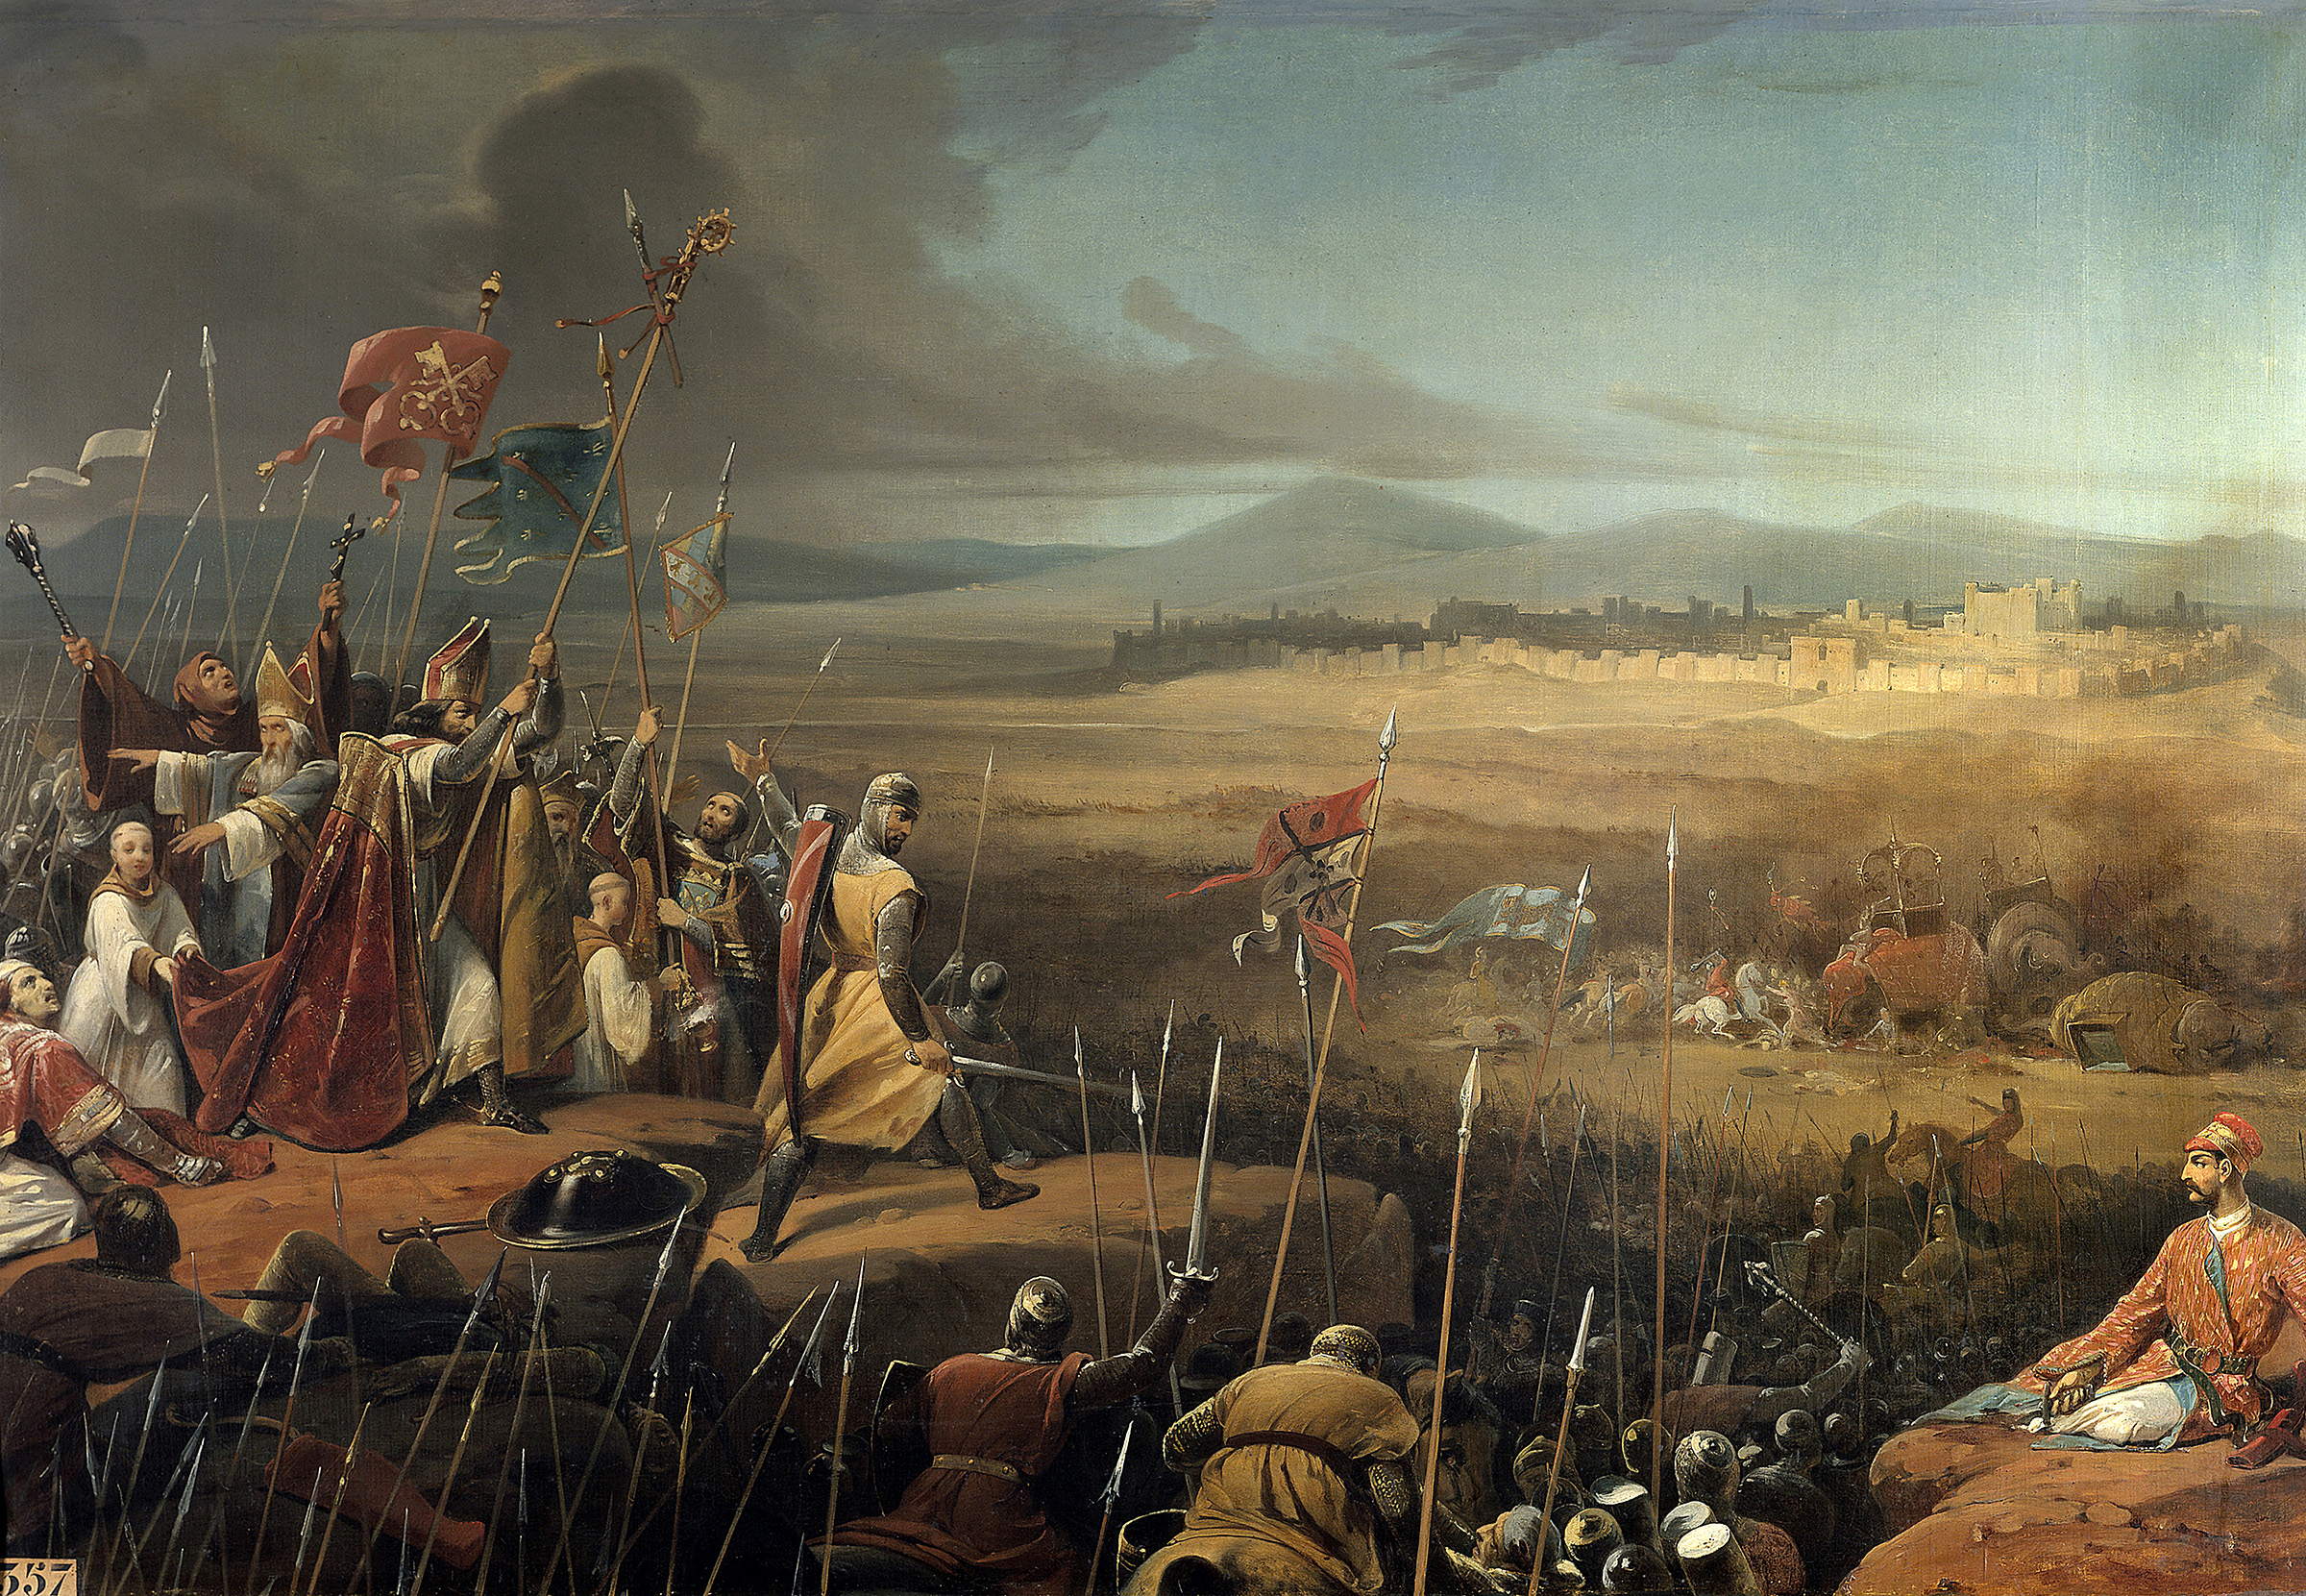 Painting by Frederic Schopin (1804-1880) depicting the First Crusade —  Battle delivered under the walls of Antioch between the crusaders led by Bohemond and the army of Karbouka, general of the Sultan of Persia, June 1098